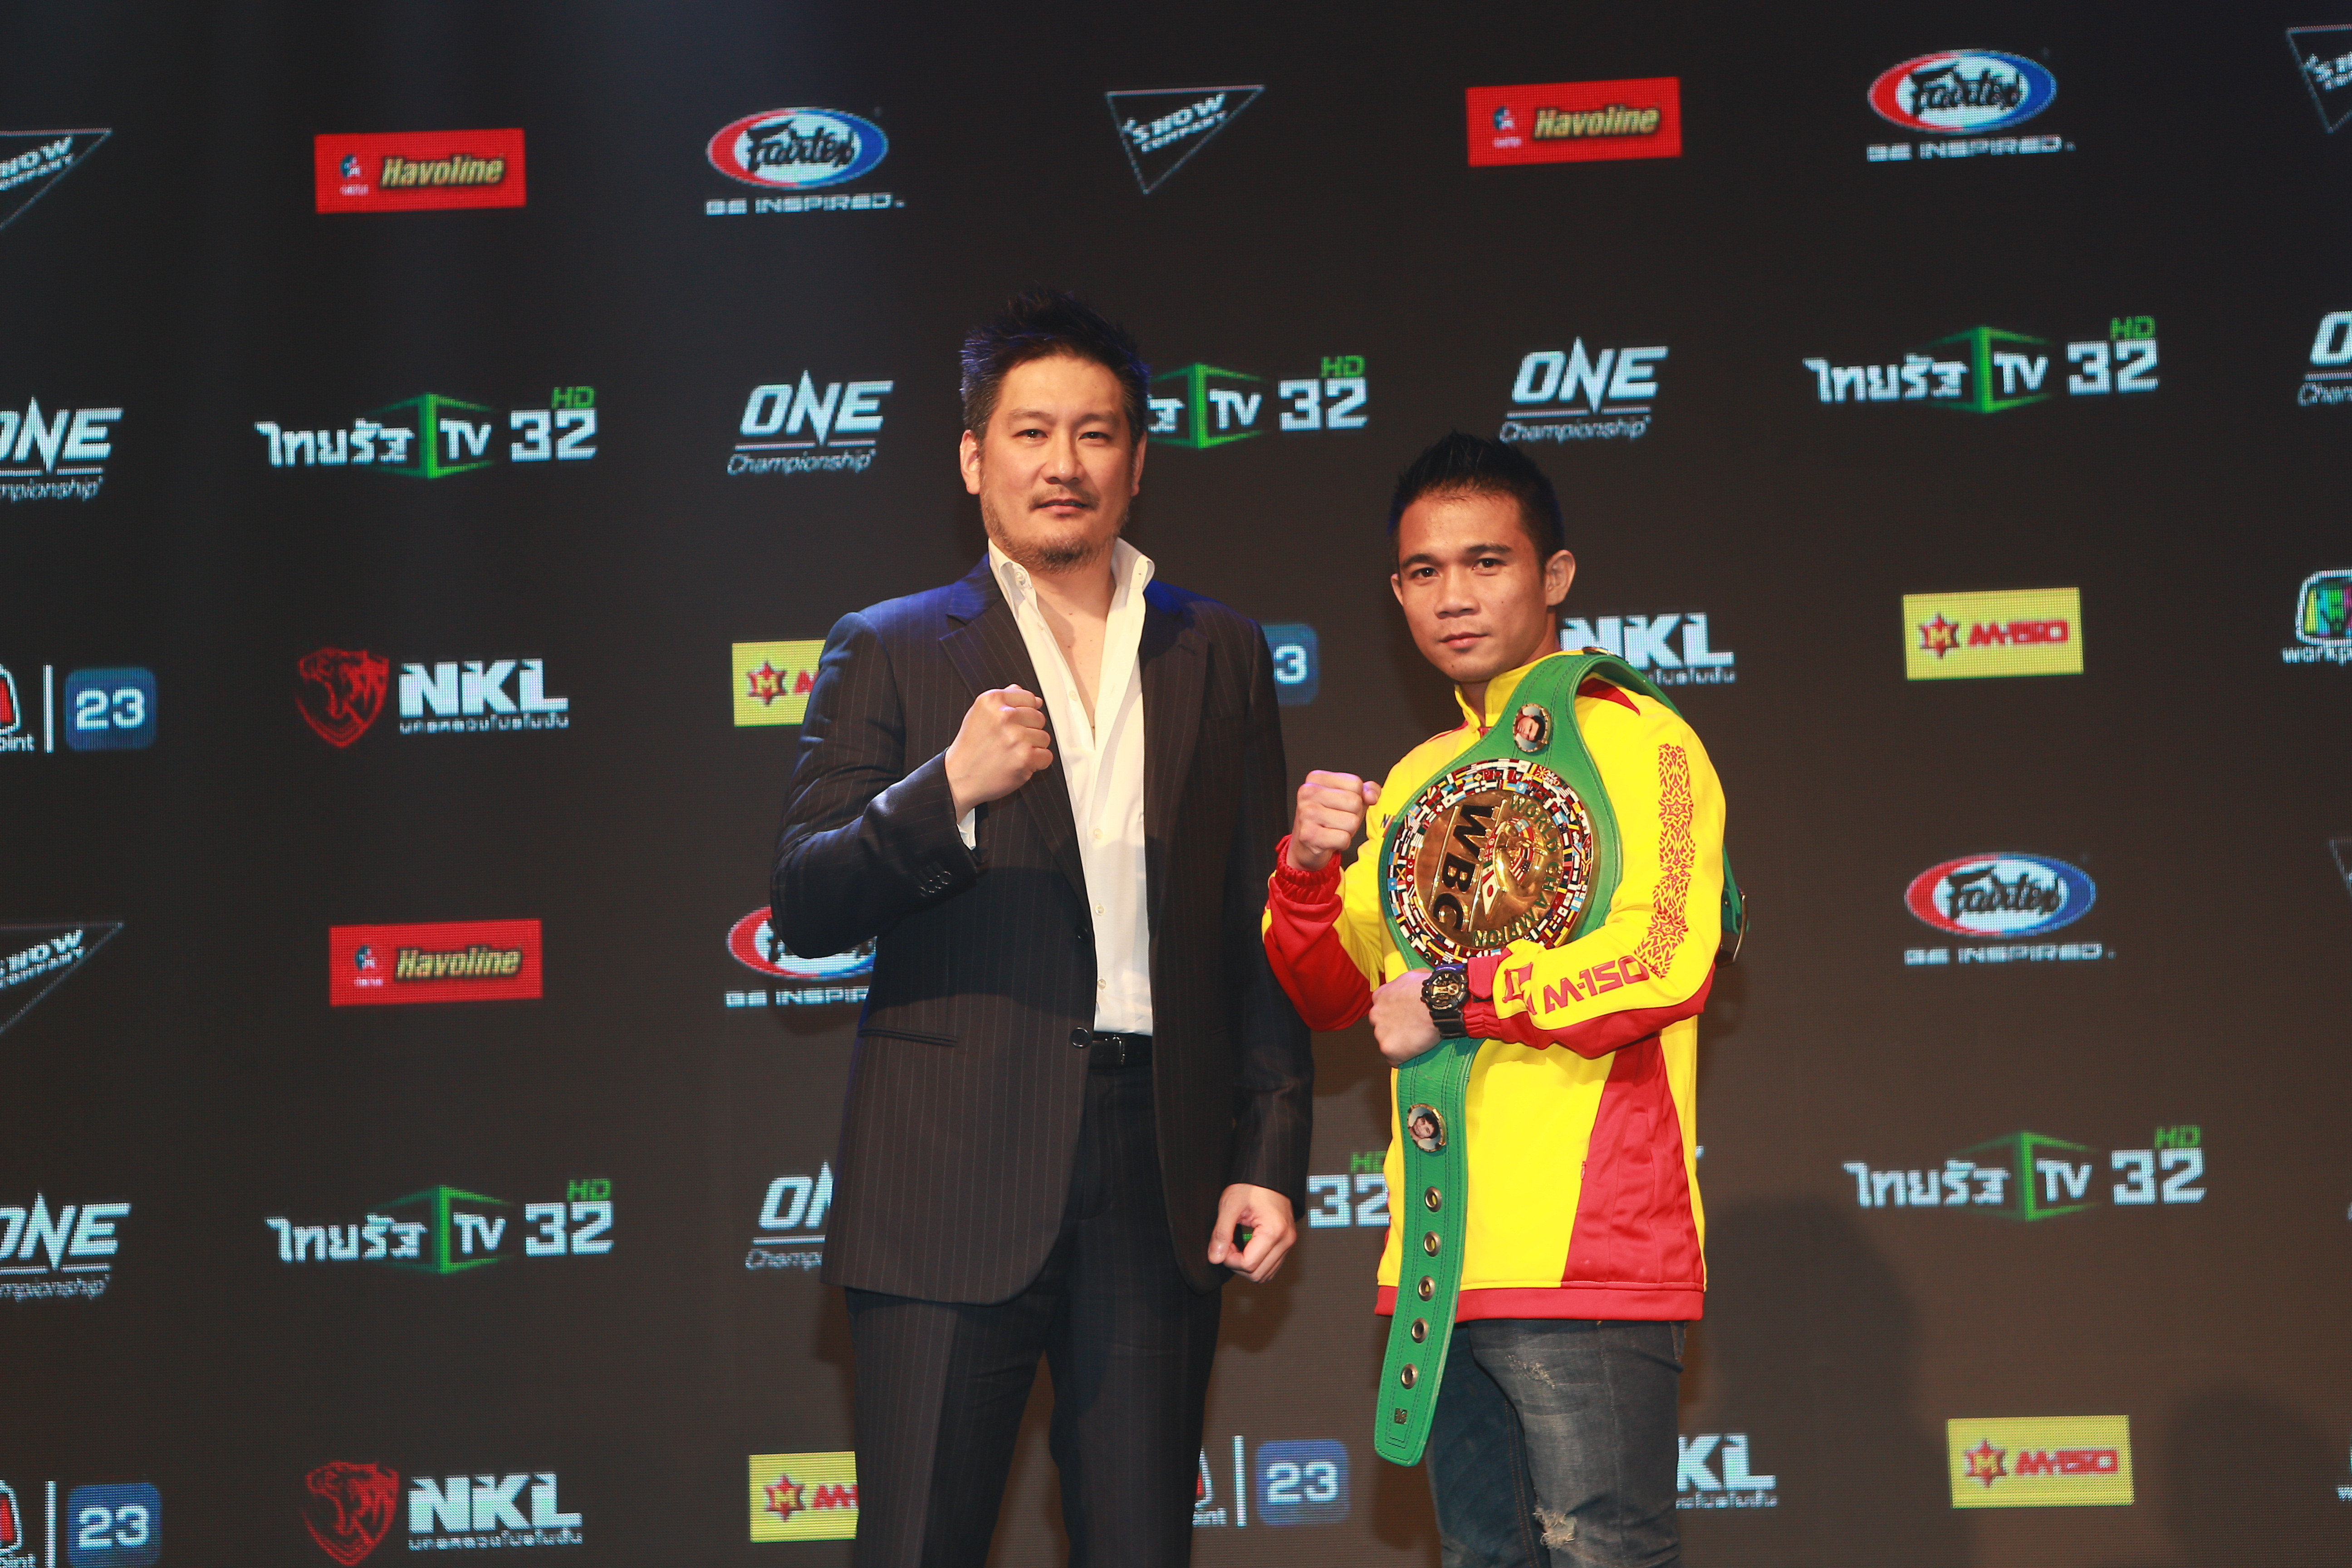 From garbage to gold: How Srisaket Sor Rungvisai became Thailand's national treasure - Srisaket Sor Rungvisai